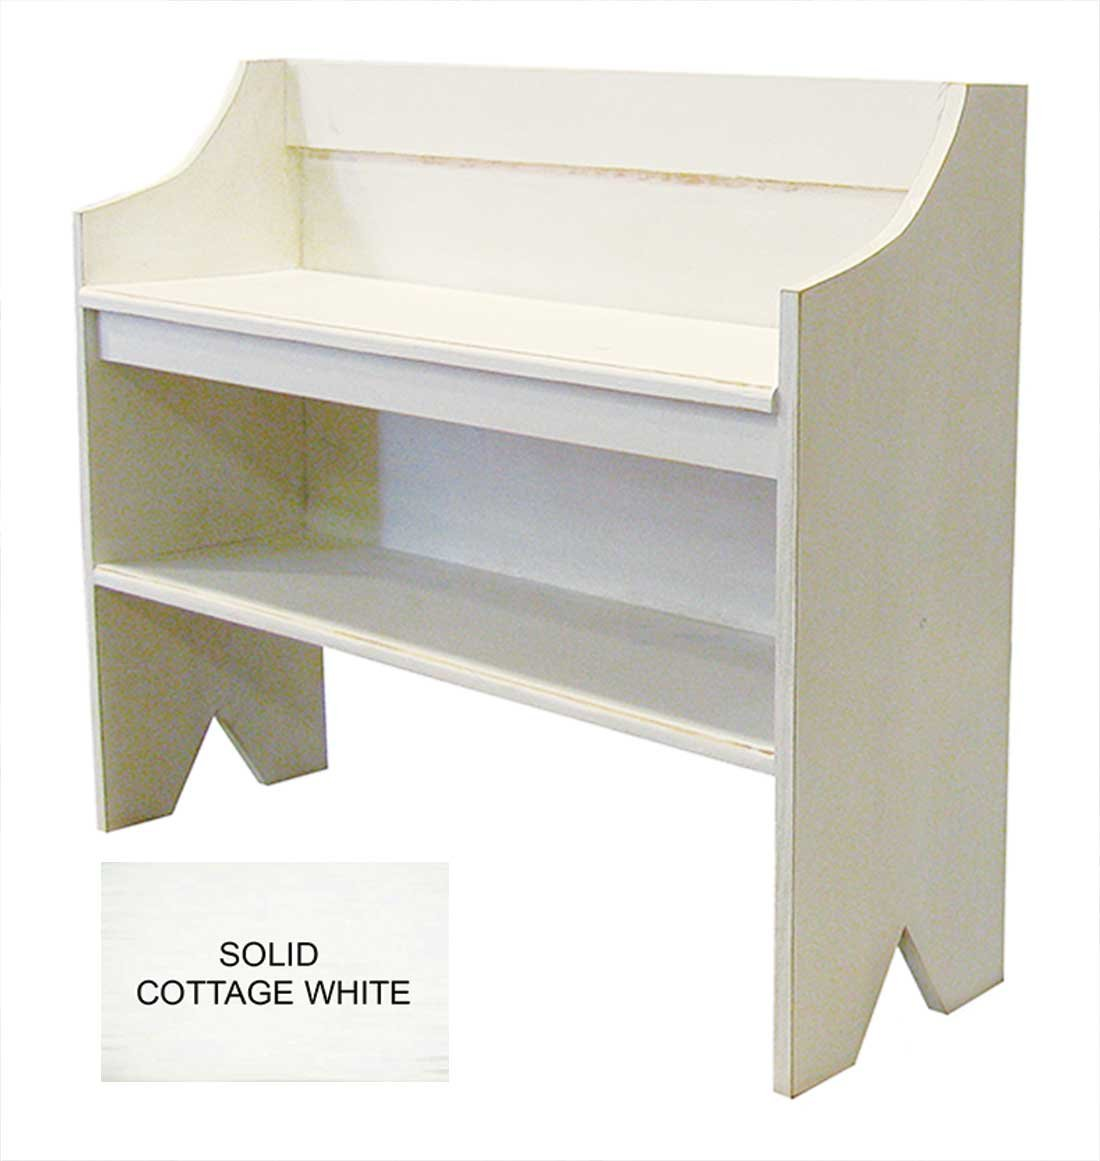 Bench with Shoe Shelf (Solid Cottage White)